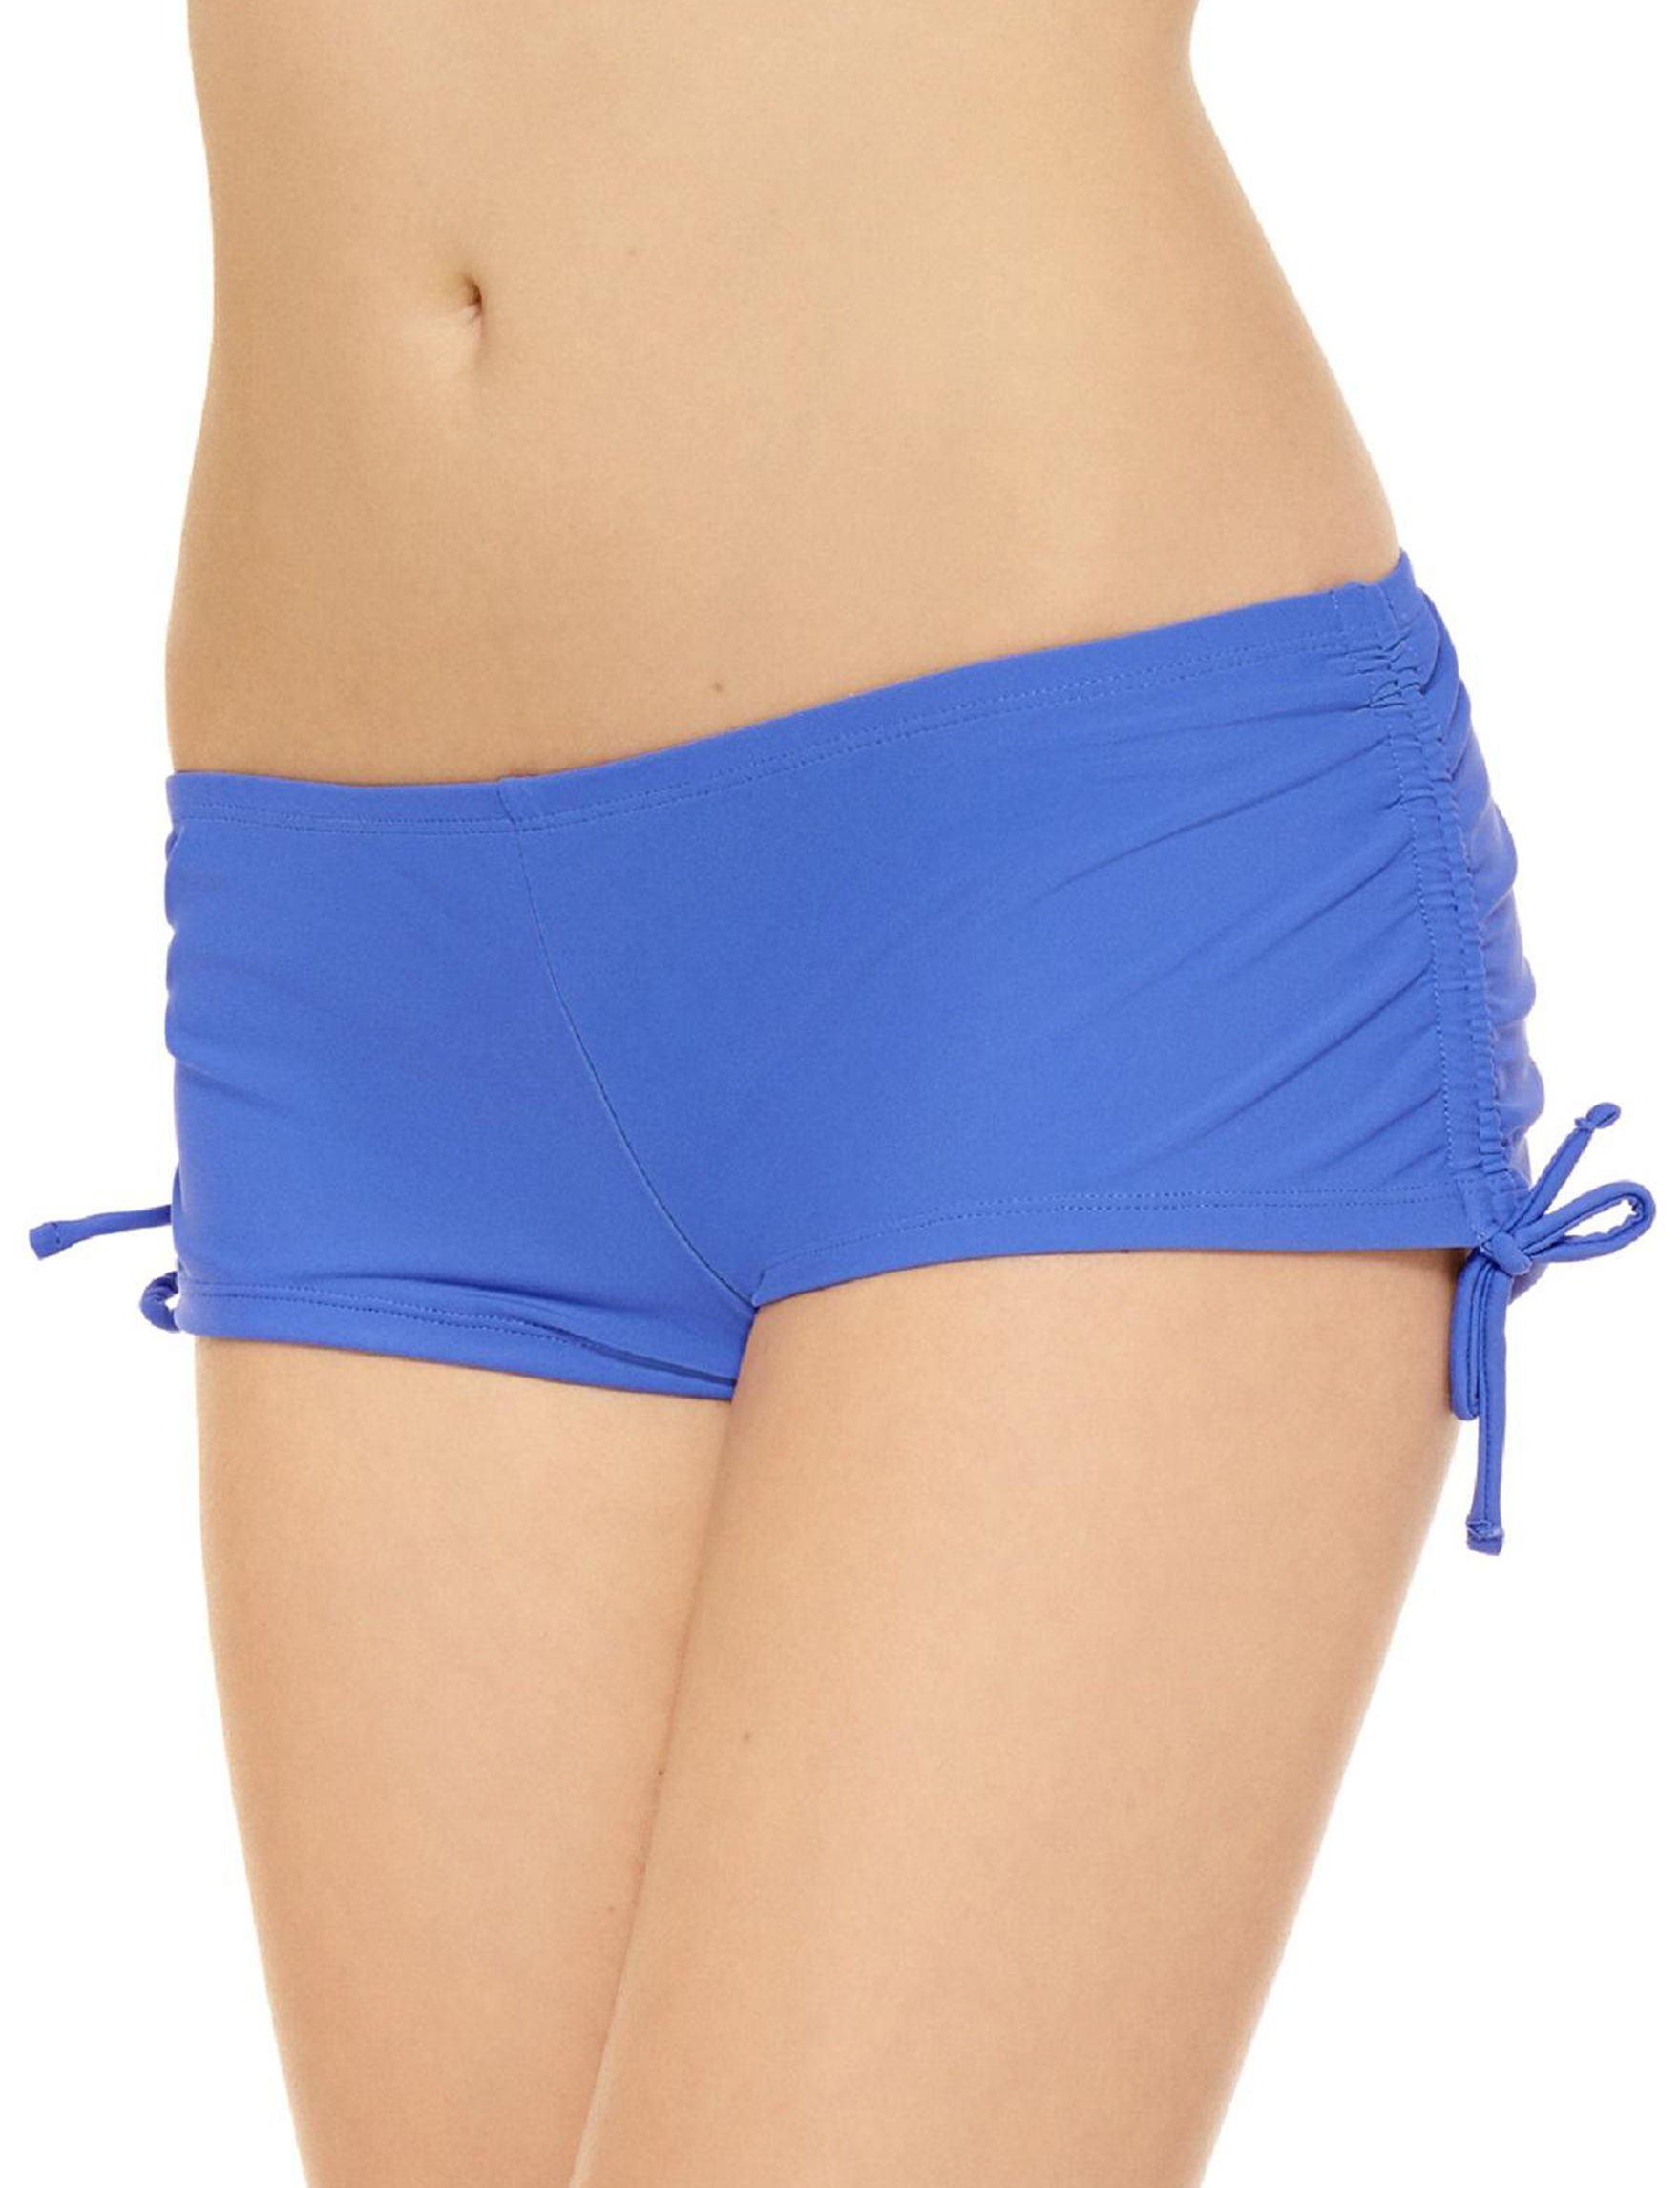 Hot Water Blue Swimsuit Bottoms Boyshort